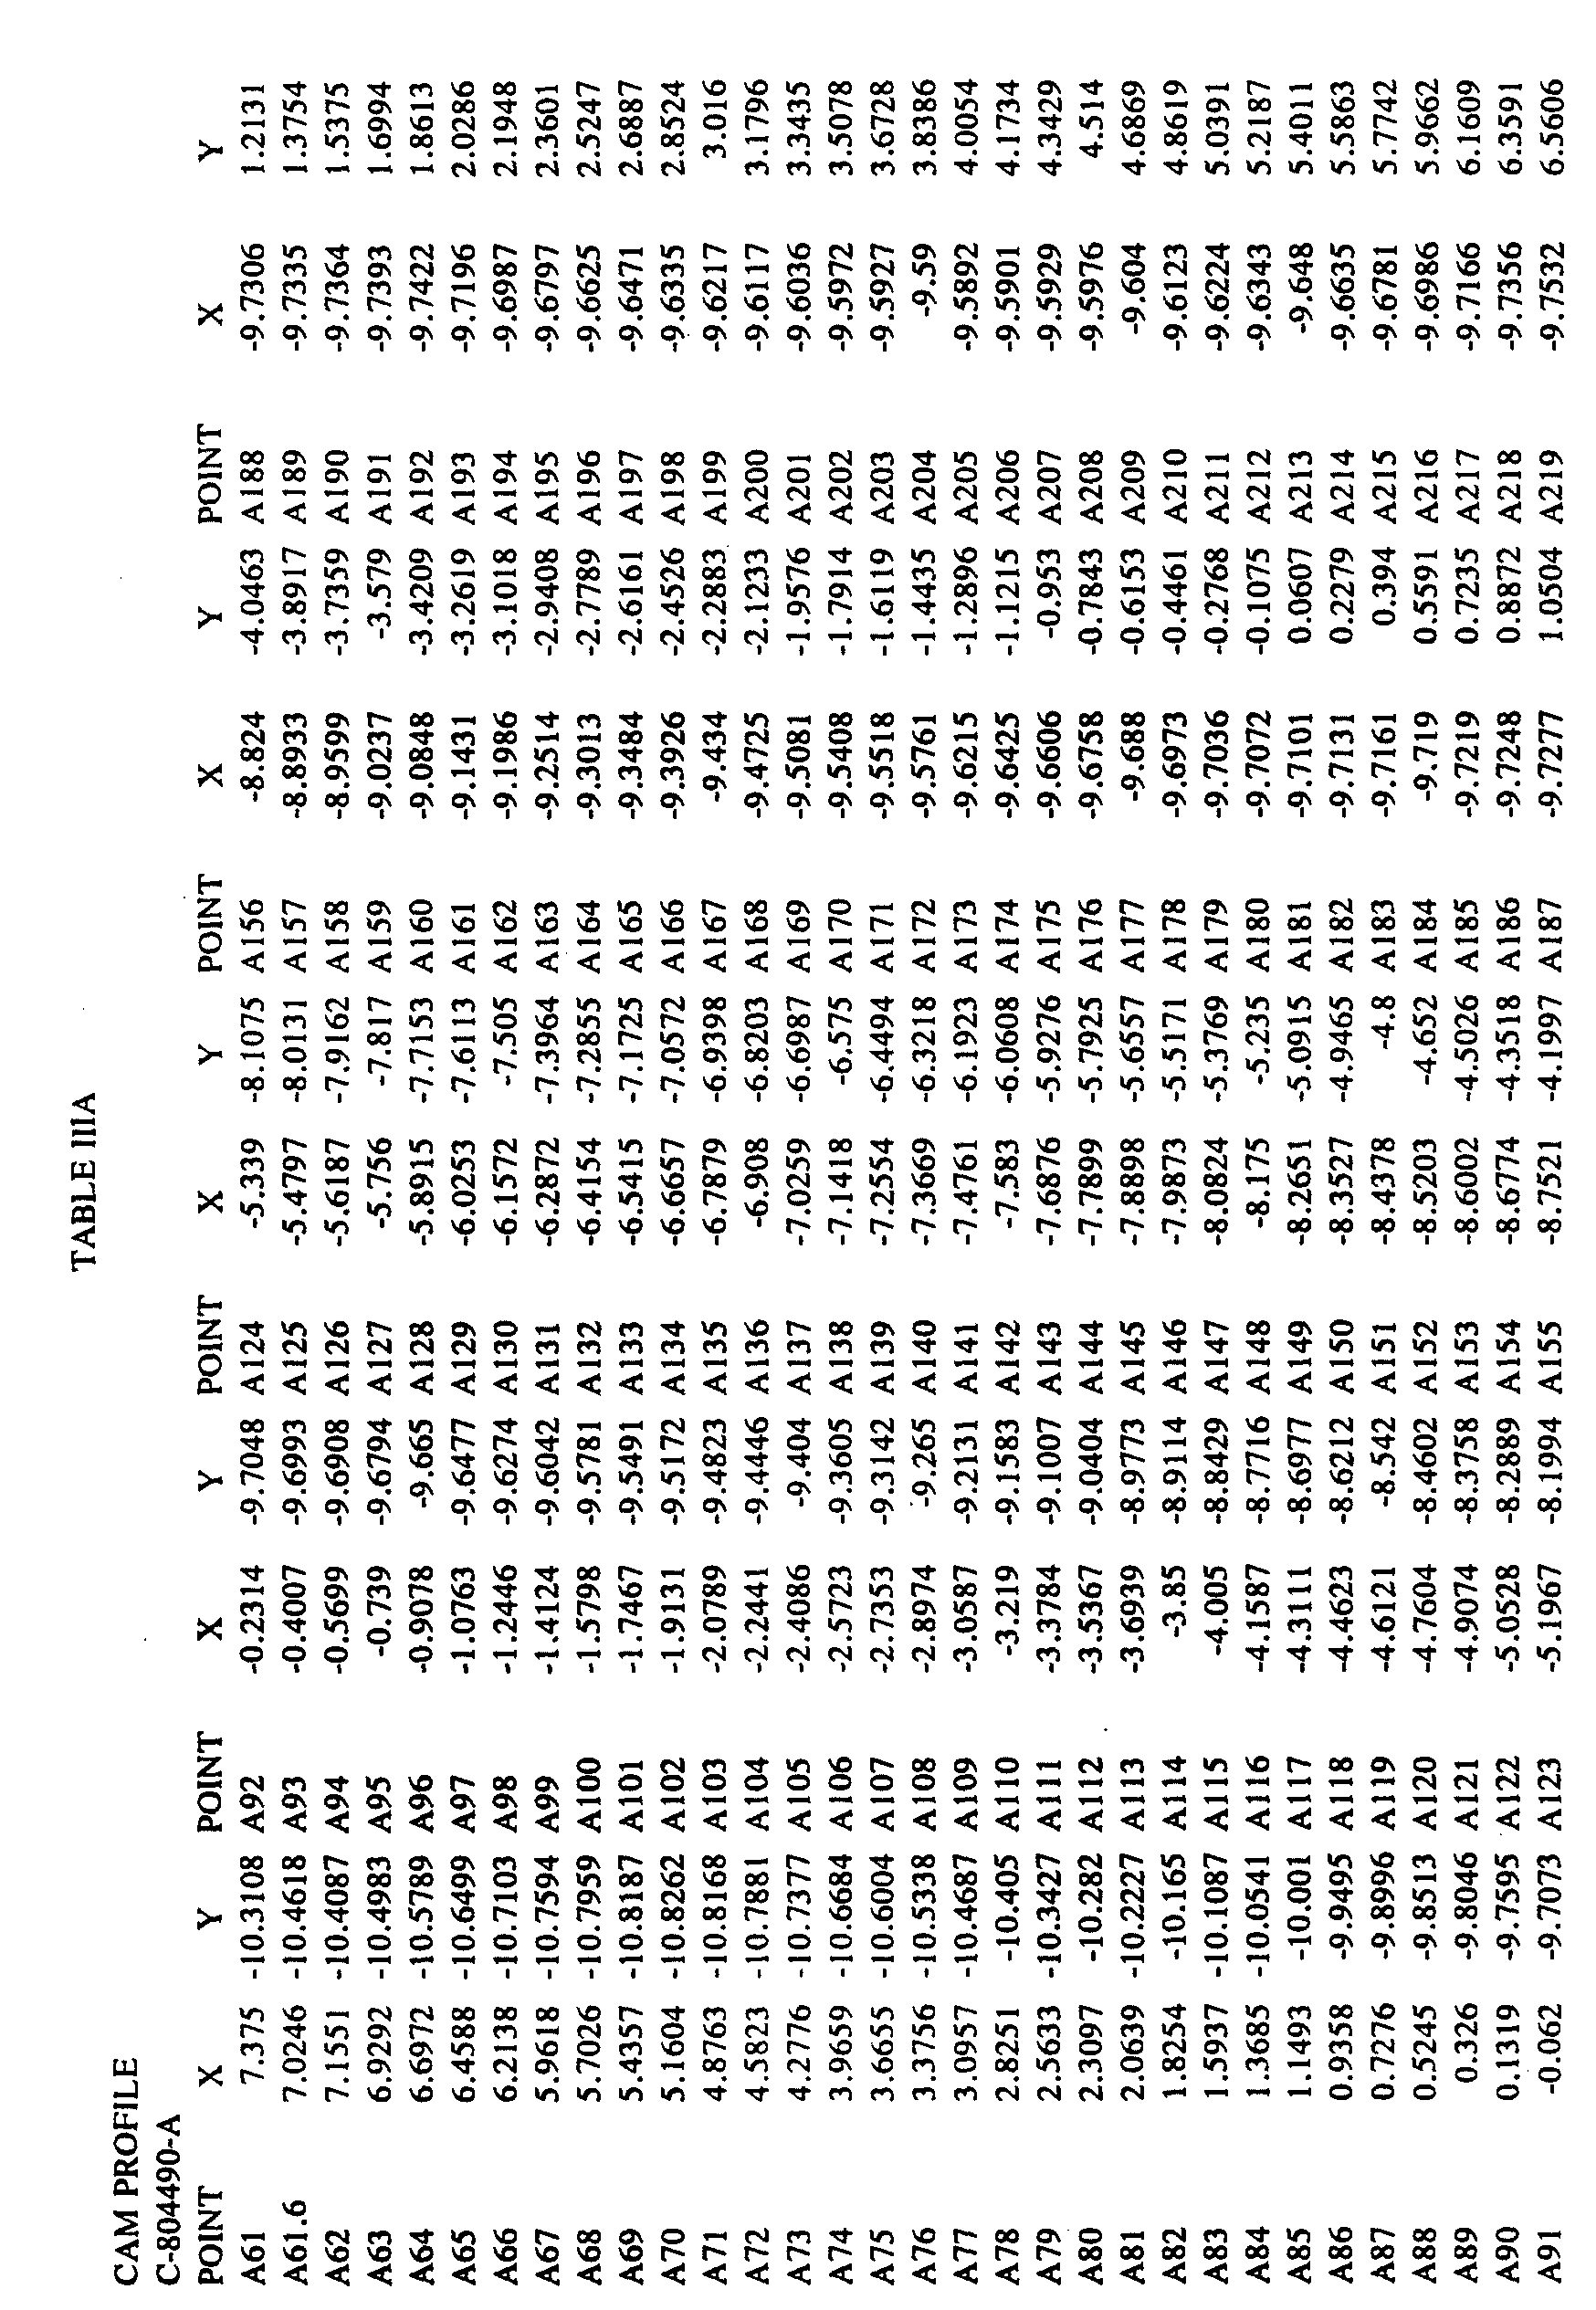 WO1996038363A1 - Method of controlling a turret winder